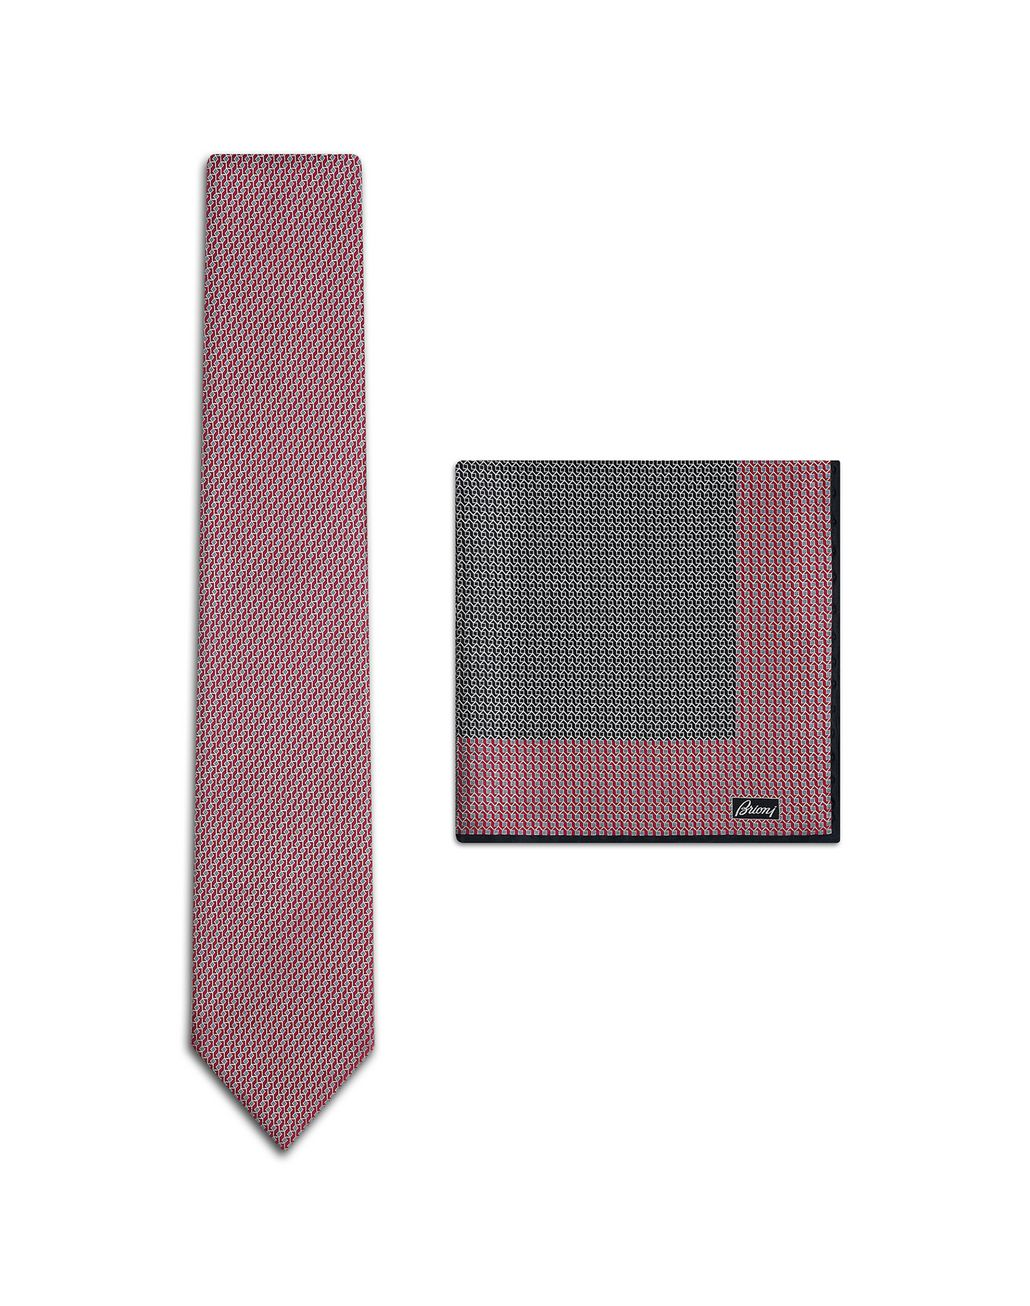 BRIONI Red and Navy Blue Micro Design Tie Set Tie & Pocket Square [*** pickupInStoreShippingNotGuaranteed_info ***] f